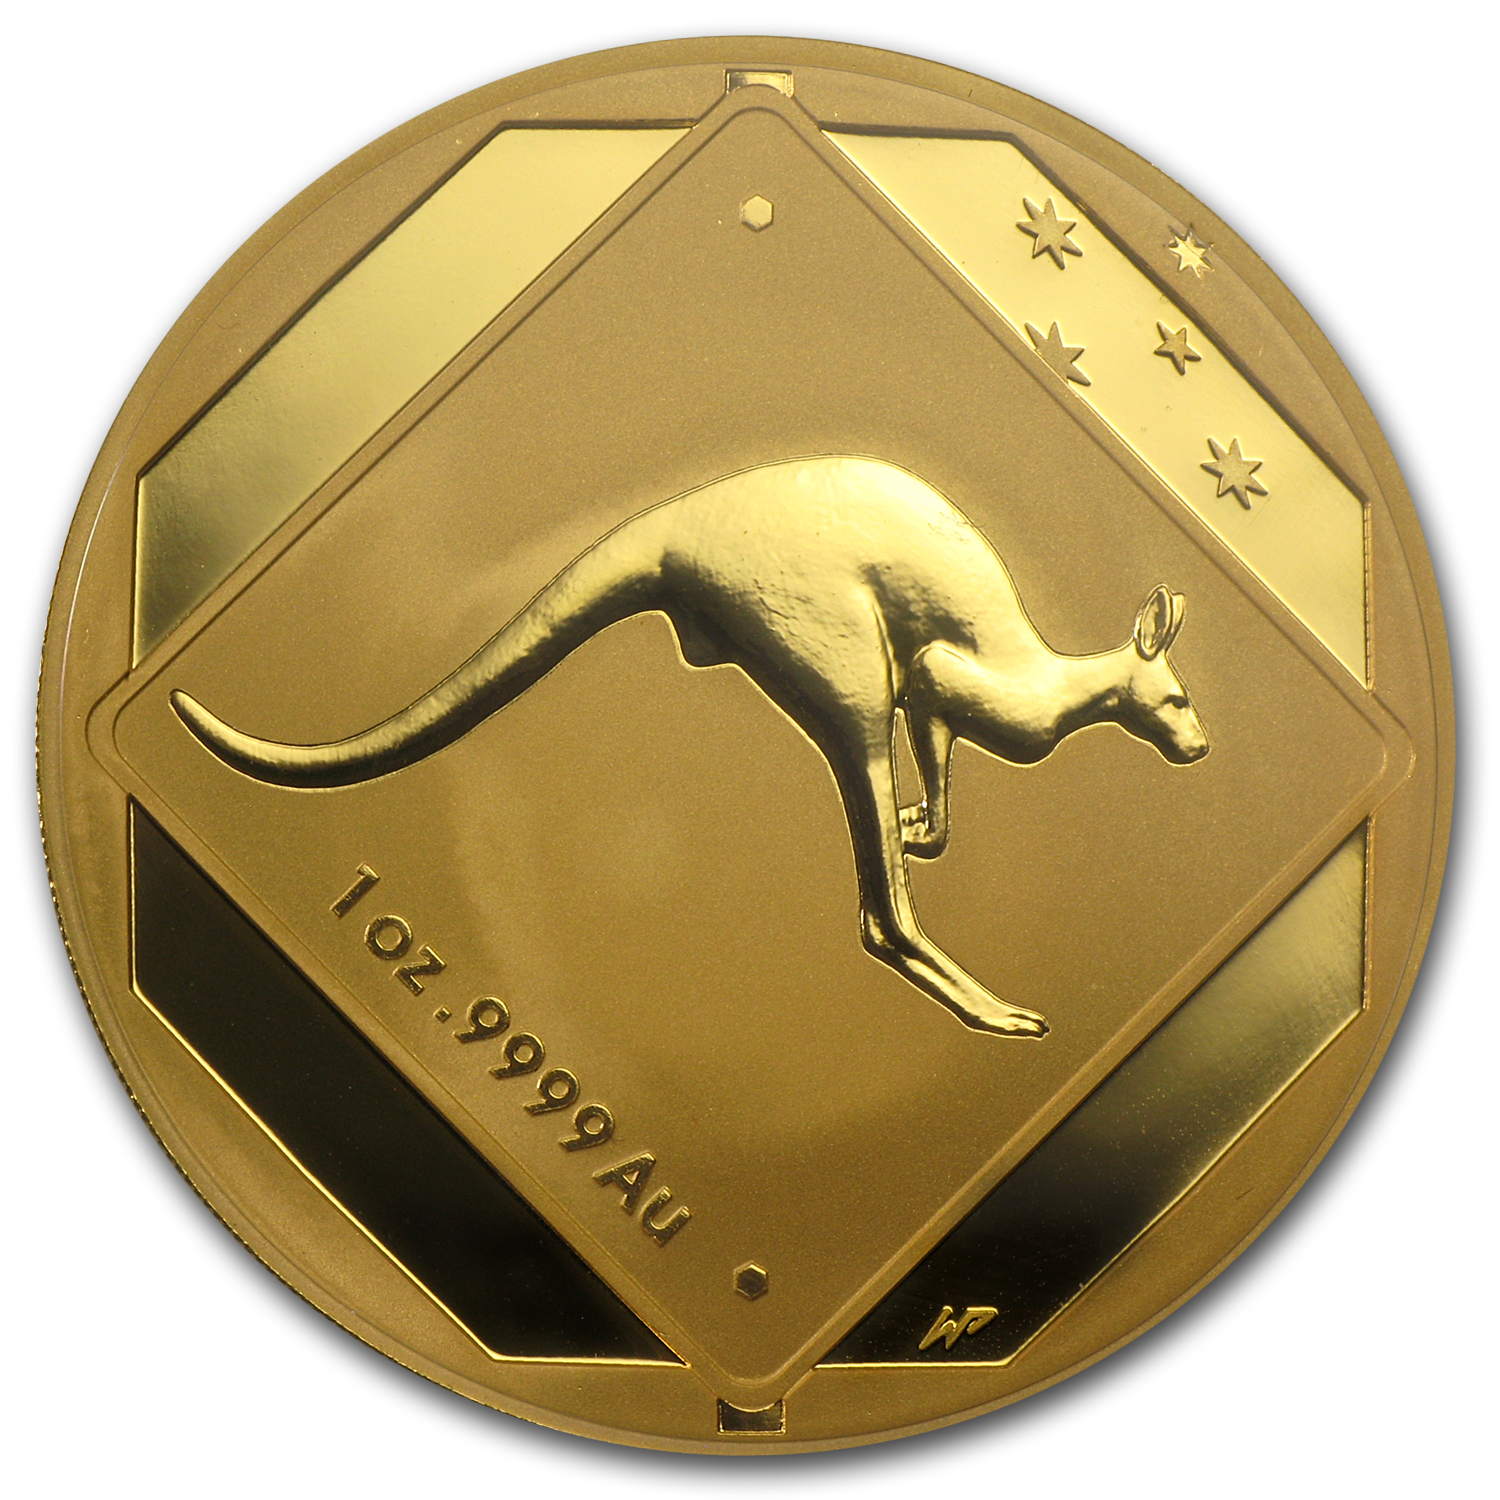 2013 Australia 1 oz Gold $100 Kangaroo Road Sign BU